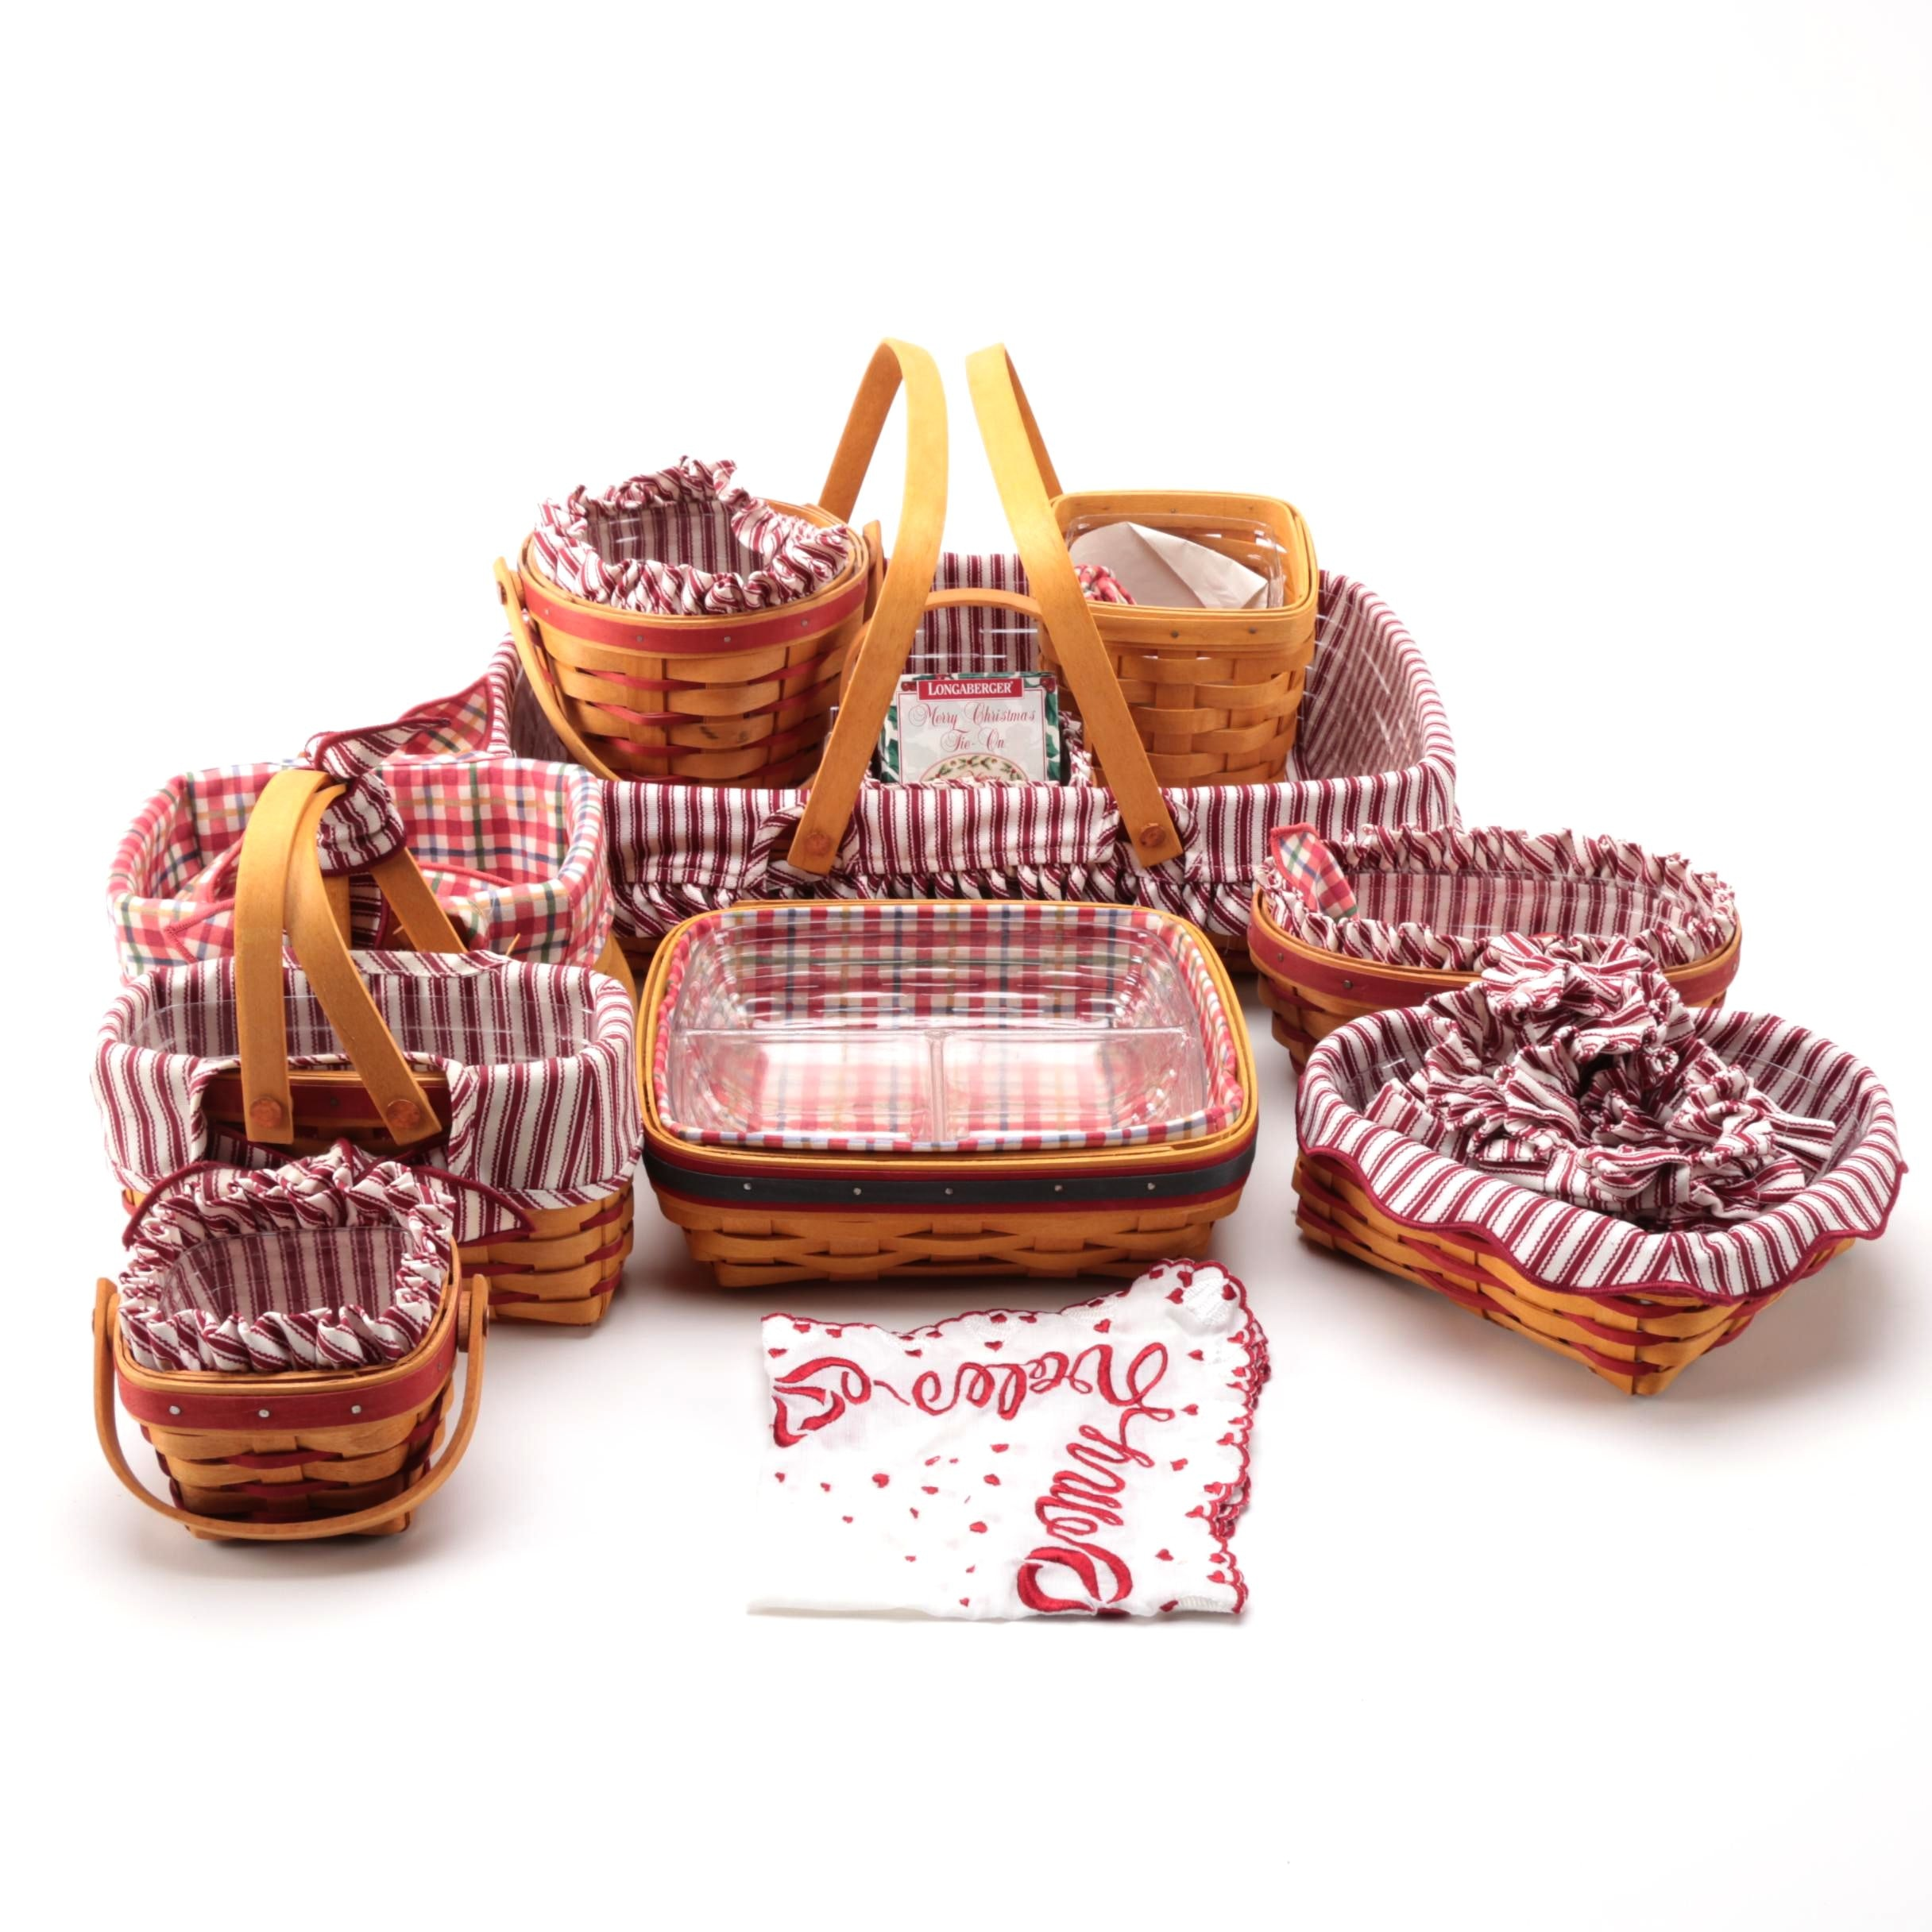 Longaberger Baskets Including Valentine's Themed Baskets